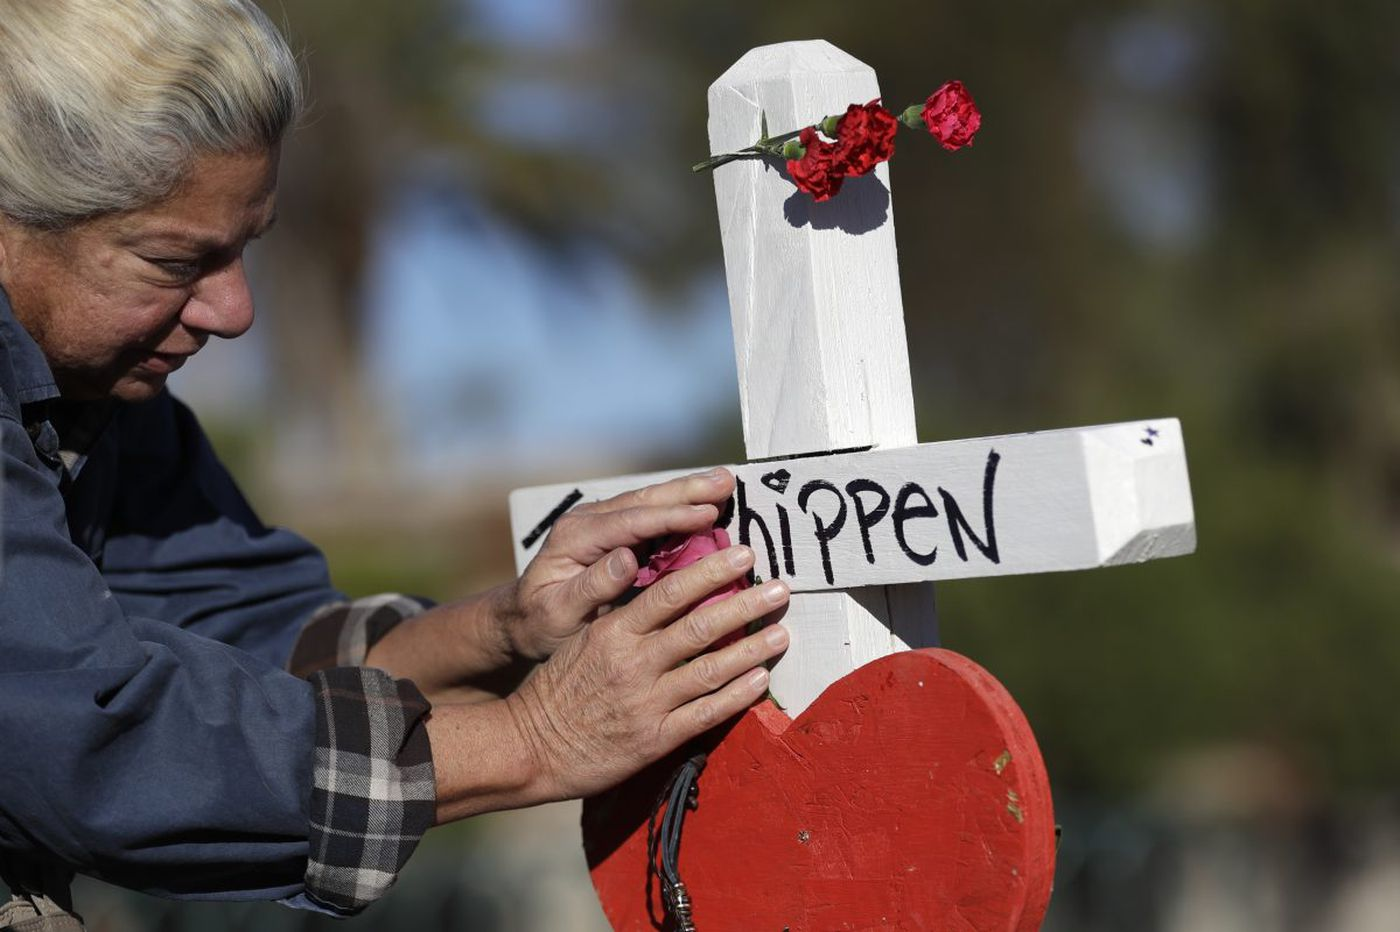 After Vegas shooting, we should teach and debate gun issues in schools | Opinion